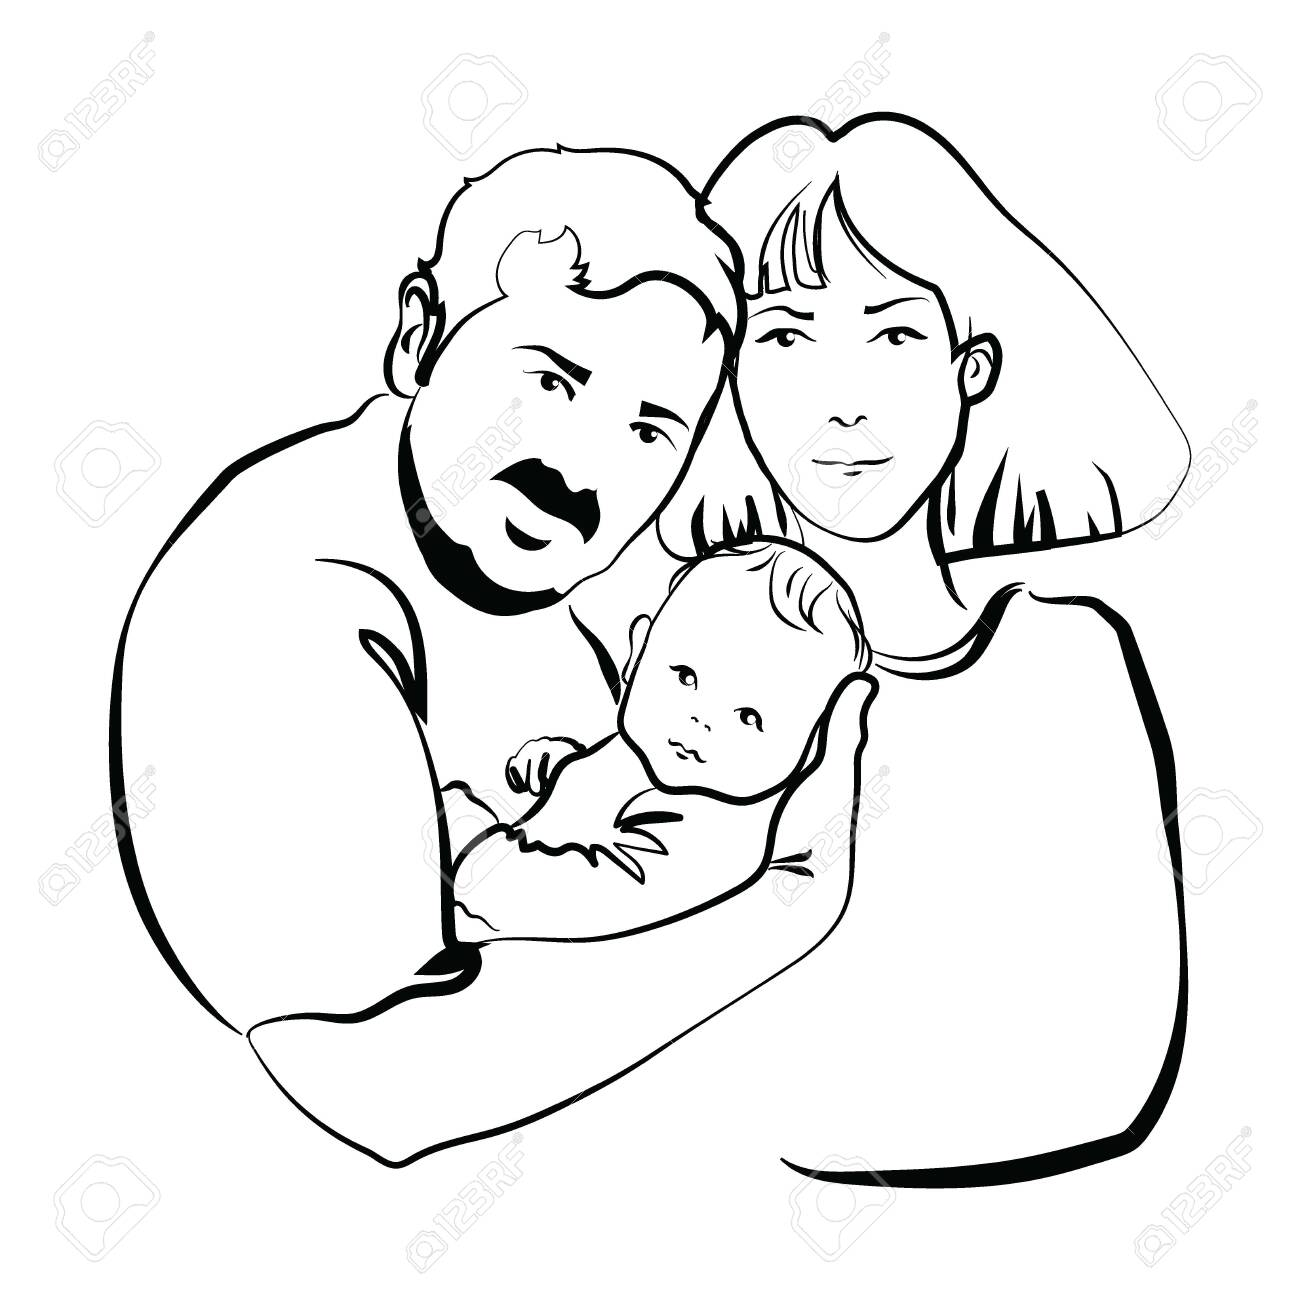 Family With Baby Father And Mother Hug Their Child Black And Royalty Free Cliparts Vectors And Stock Illustration Image 129548068